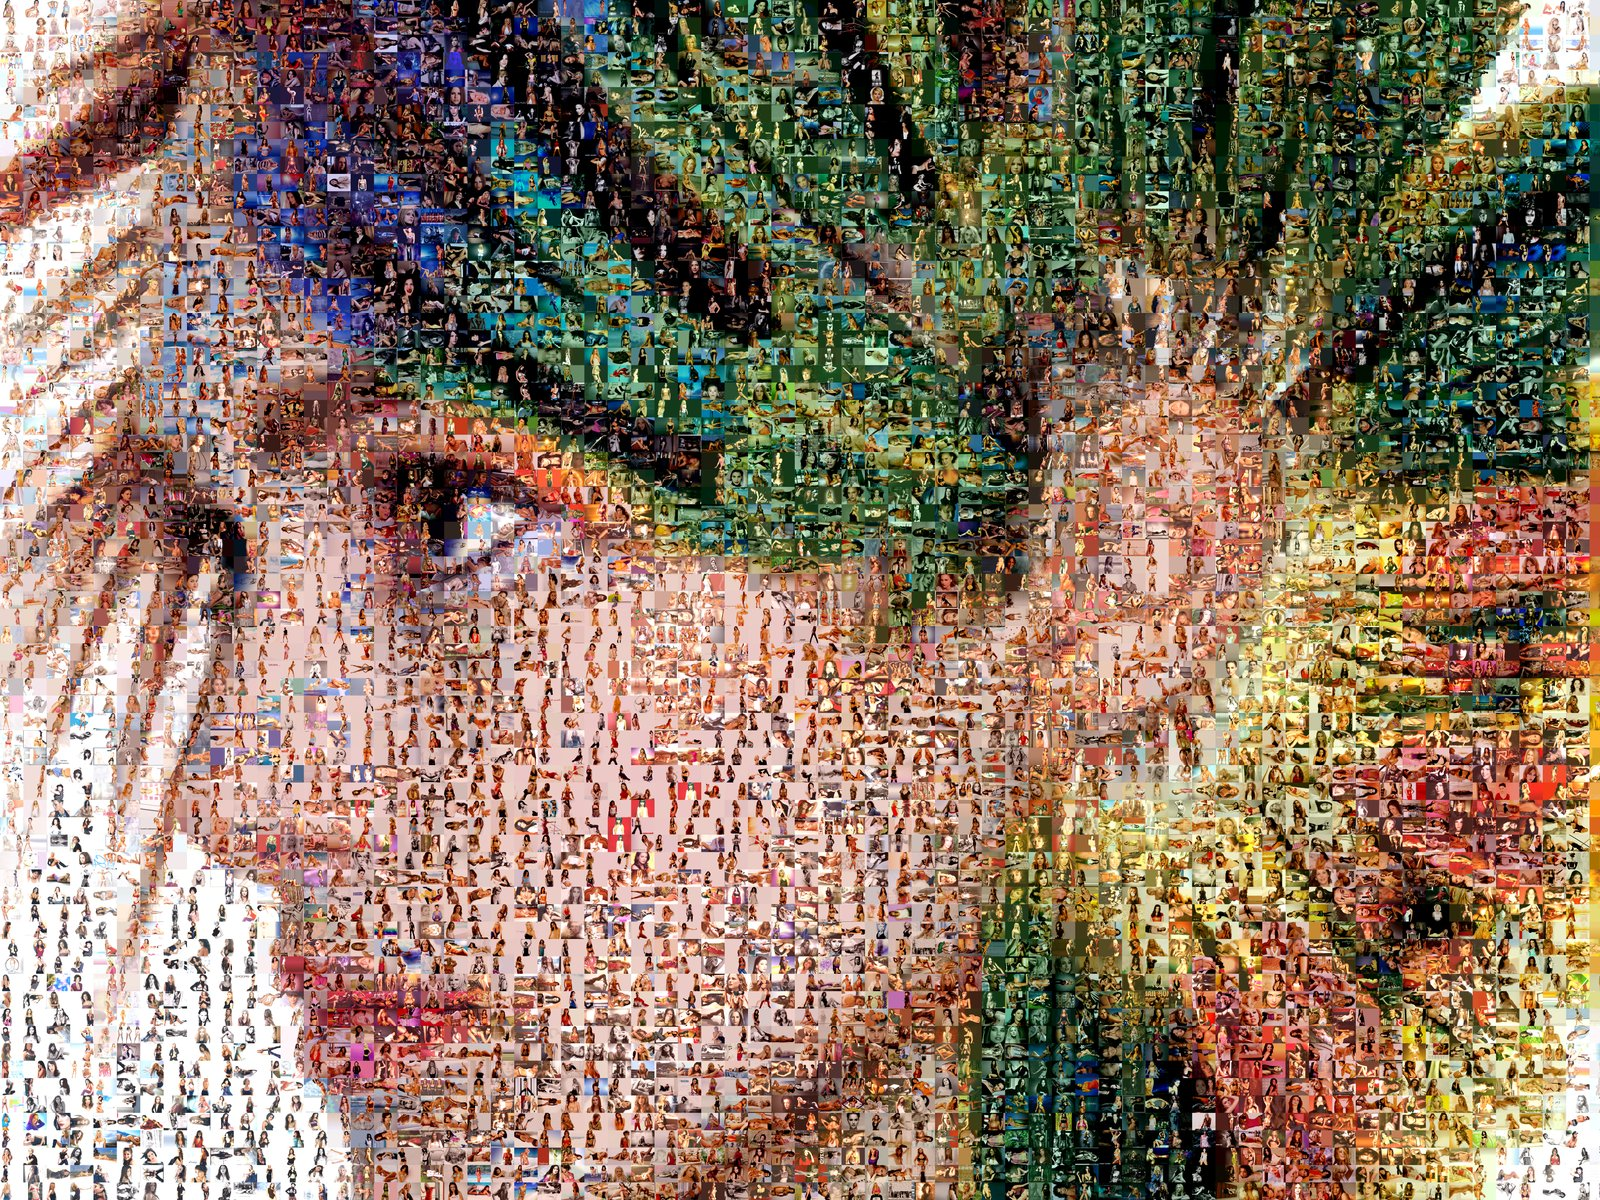 paper Mosaic artworks